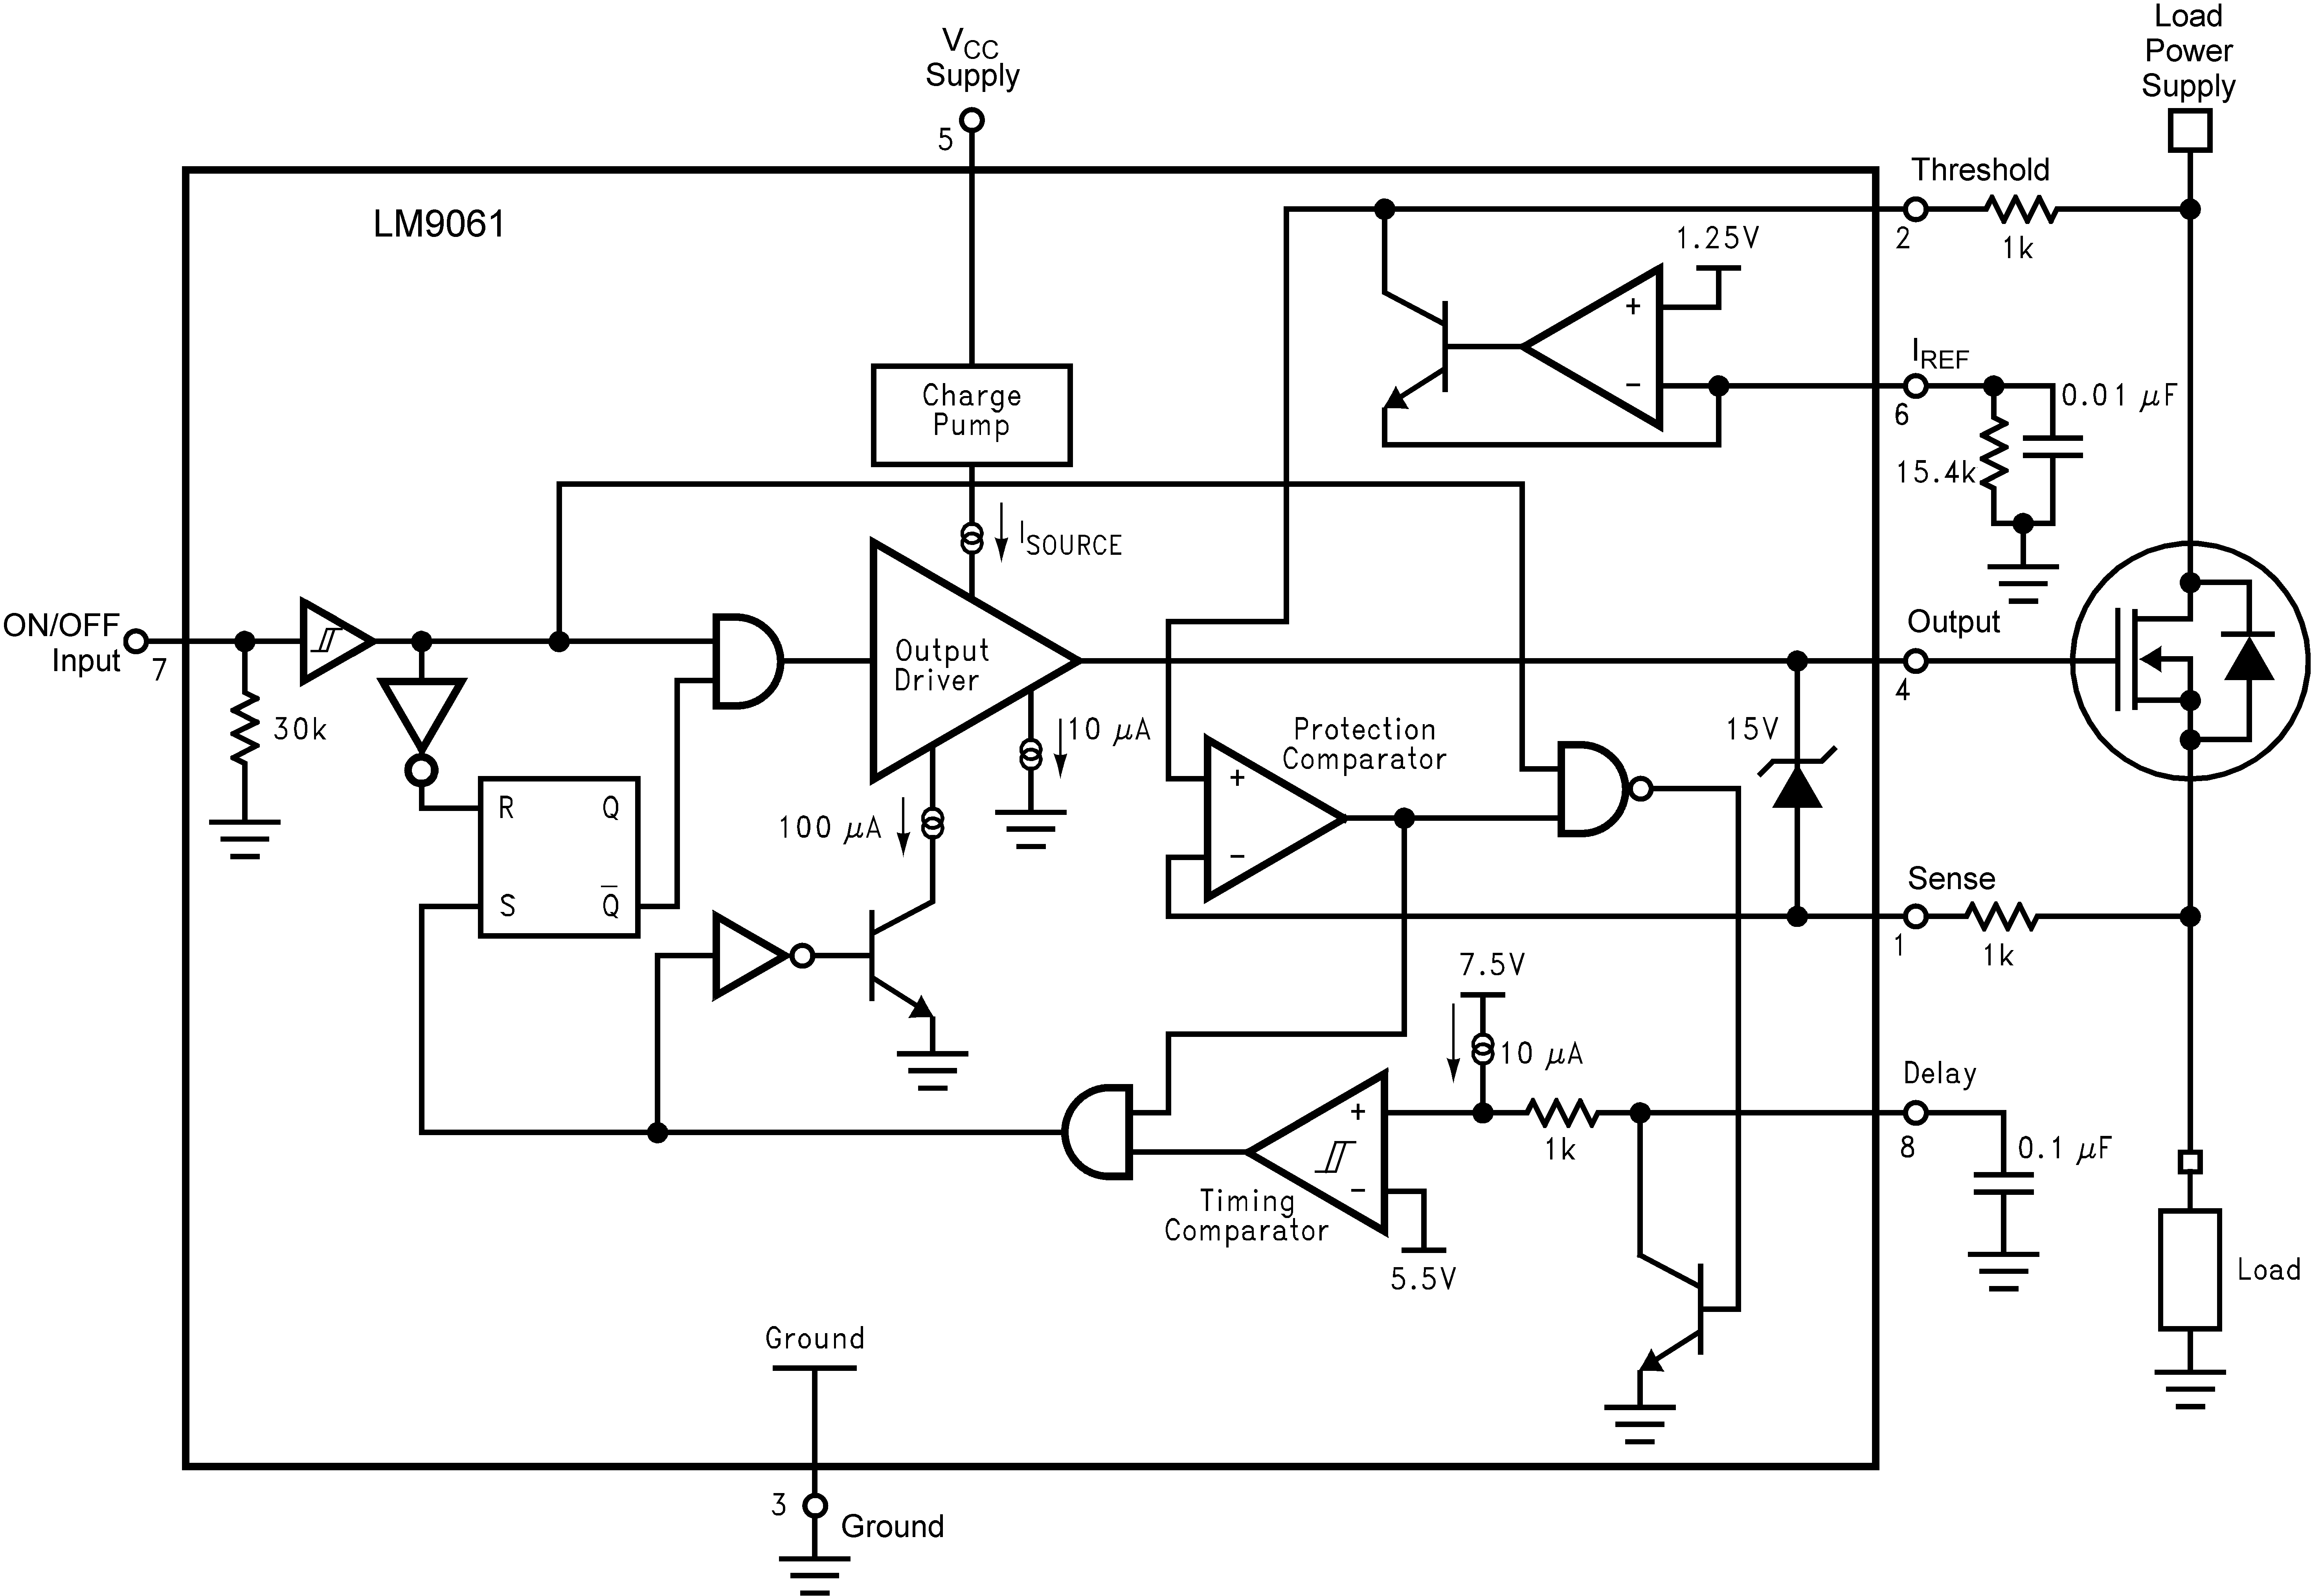 Lm9061 Shown Below Is The Schematic For Pulse Width Monitor 72 Functional Block Diagram